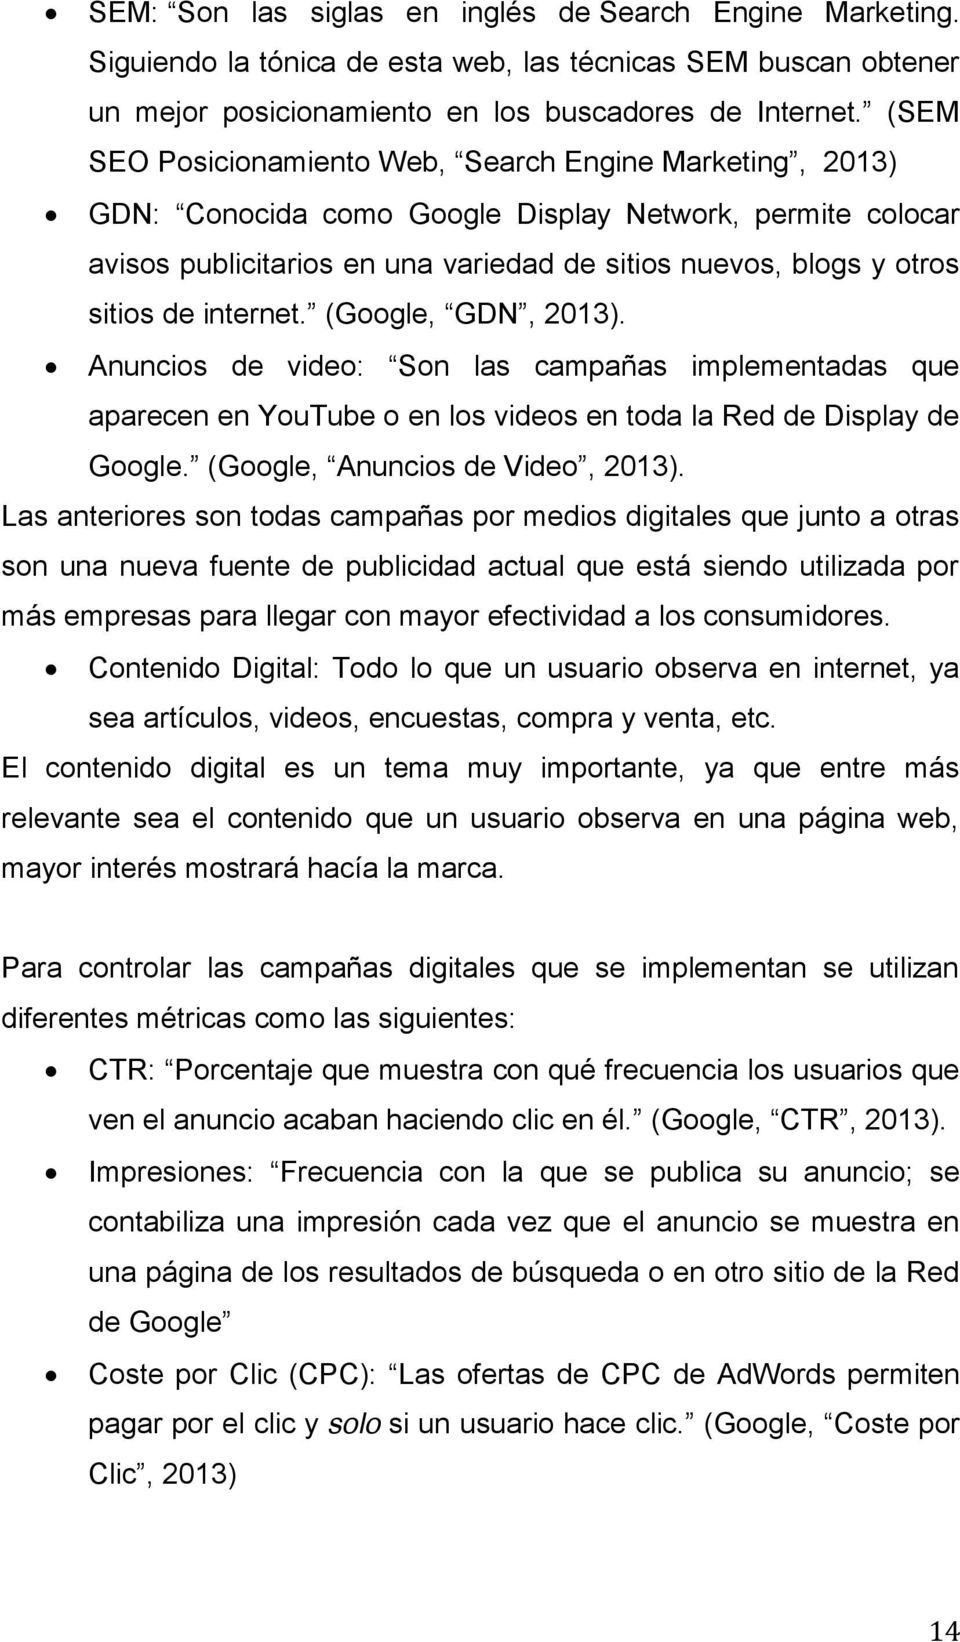 internet. (Google, GDN, 2013). Anuncios de video: Son las campañas implementadas que aparecen en YouTube o en los videos en toda la Red de Display de Google. (Google, Anuncios de Video, 2013).